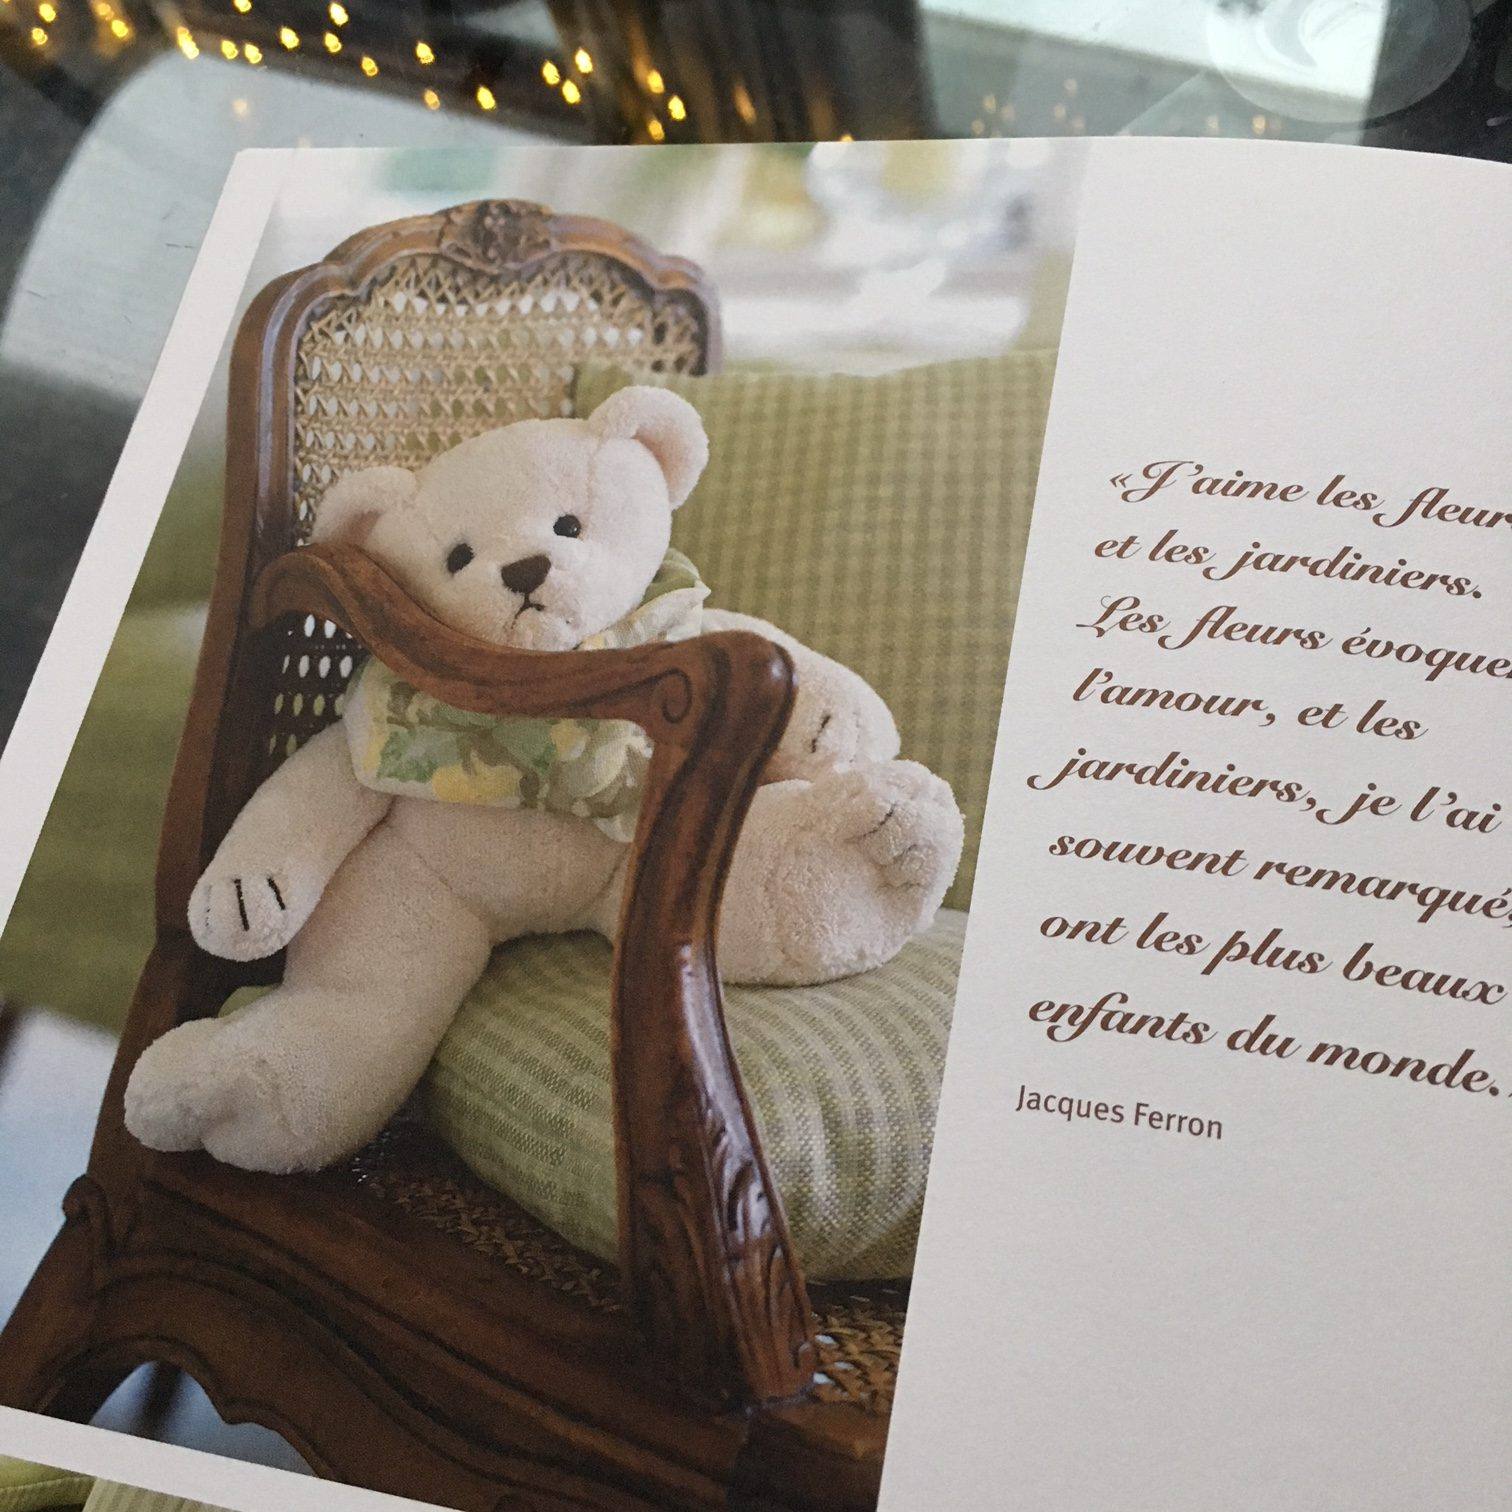 catalogue page with picture of a teddy bear and poem quote